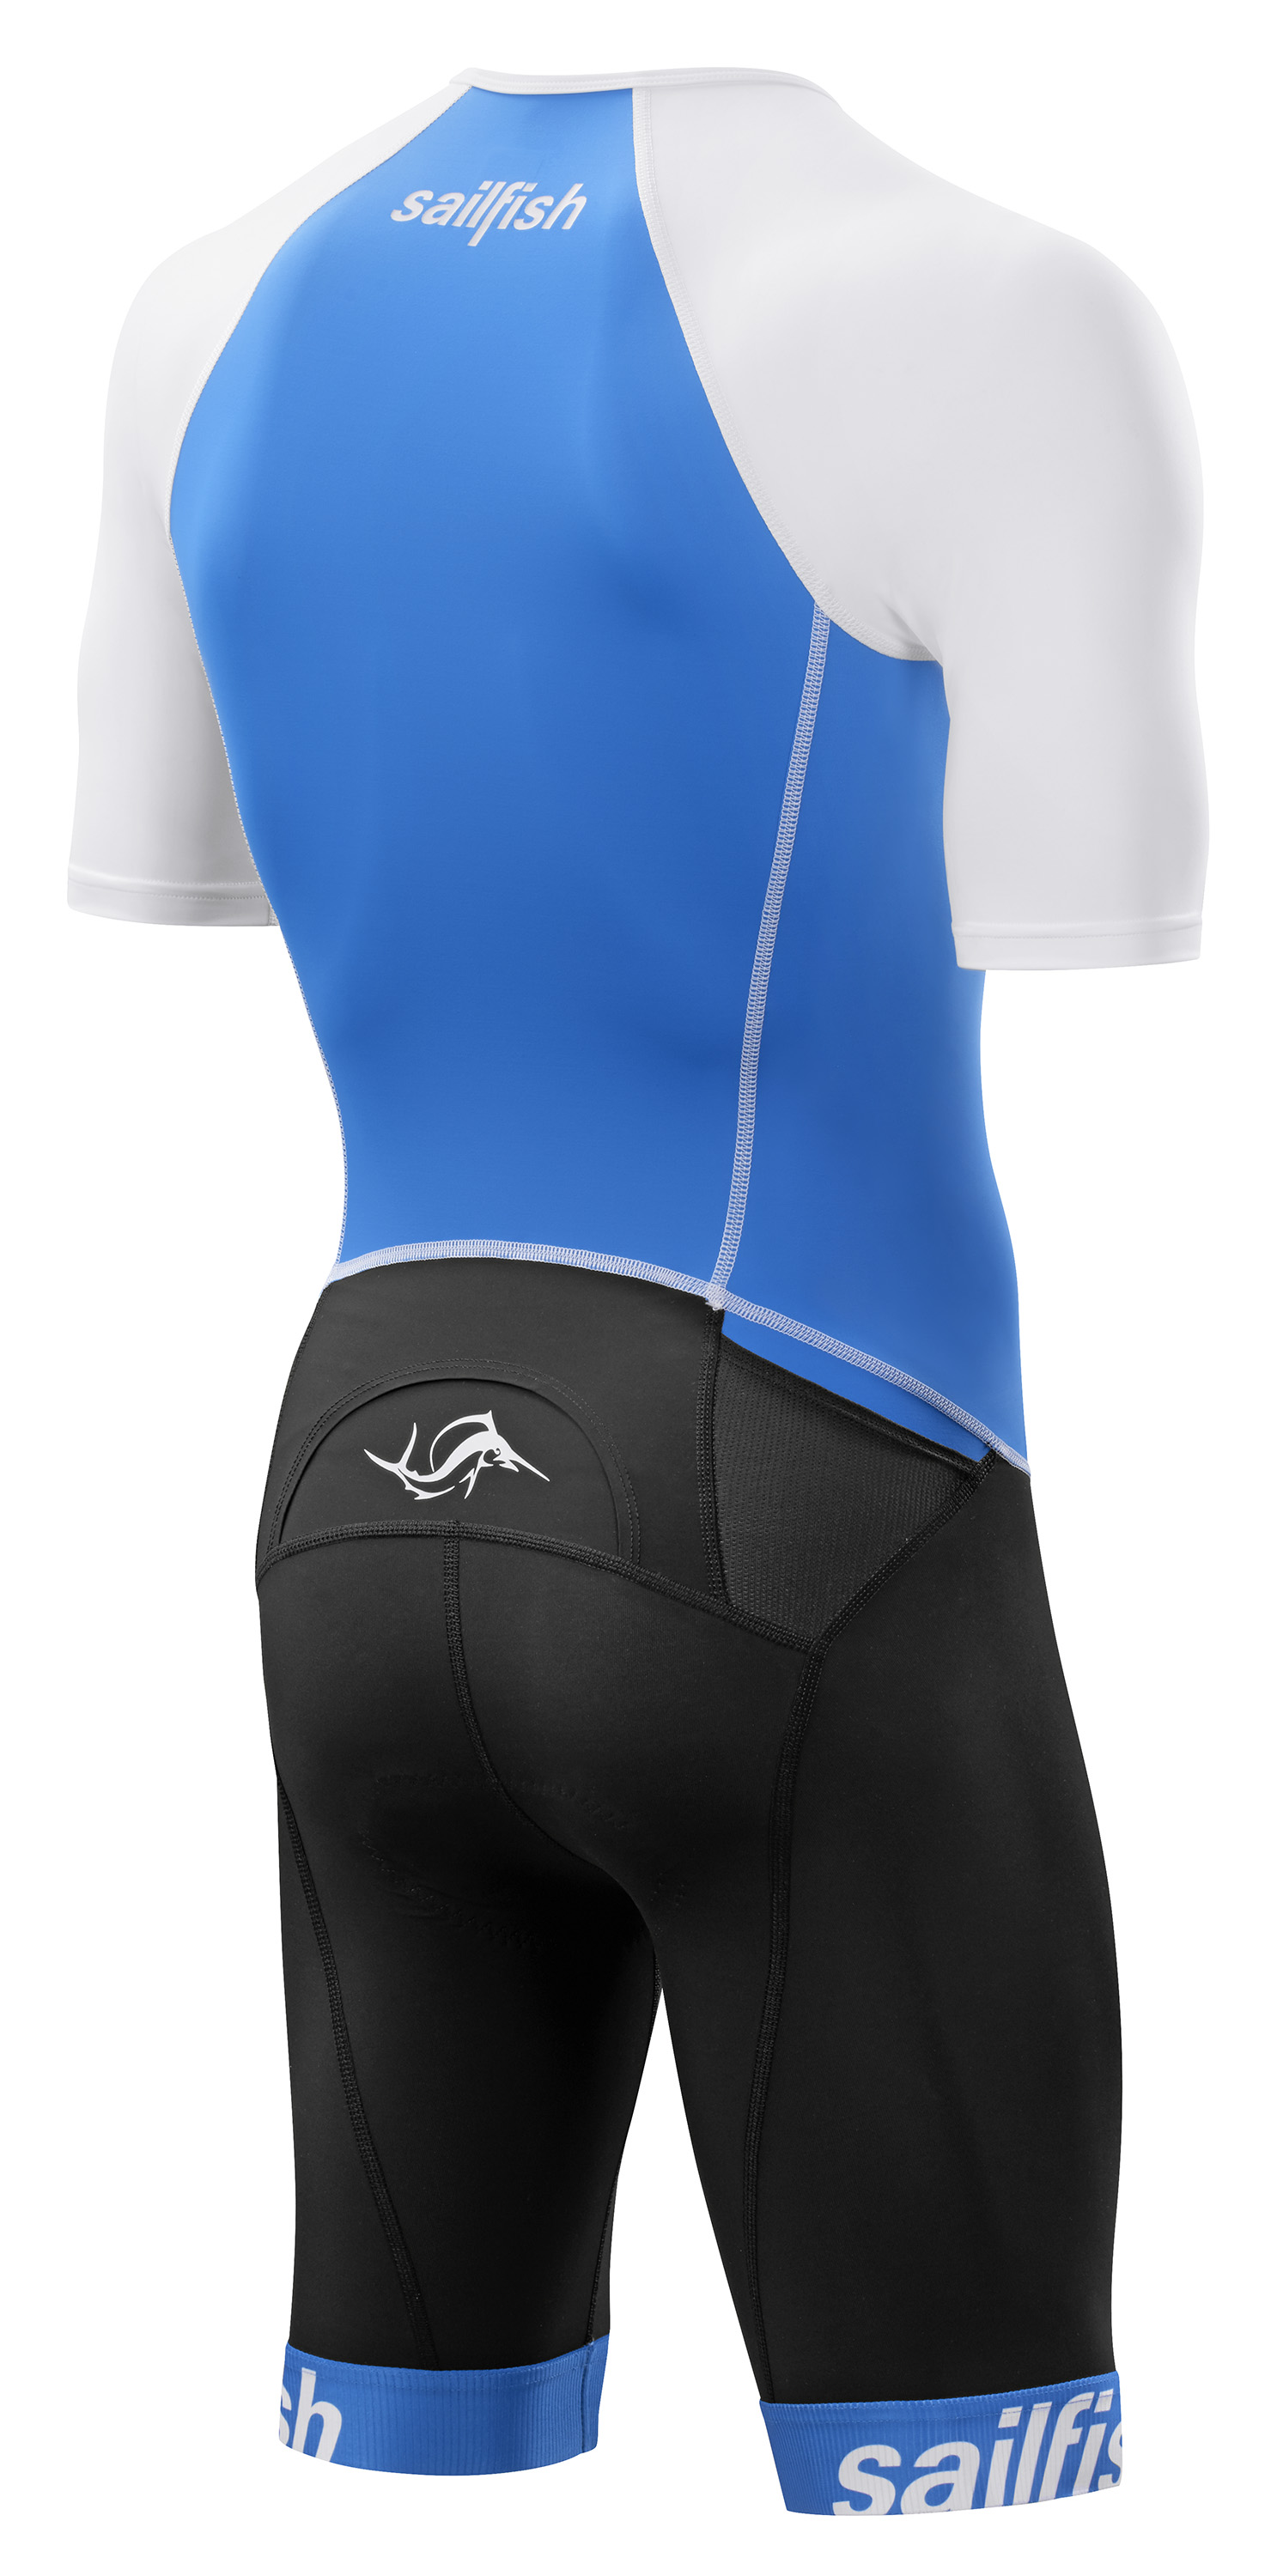 Sailfish - Aerosuit comp